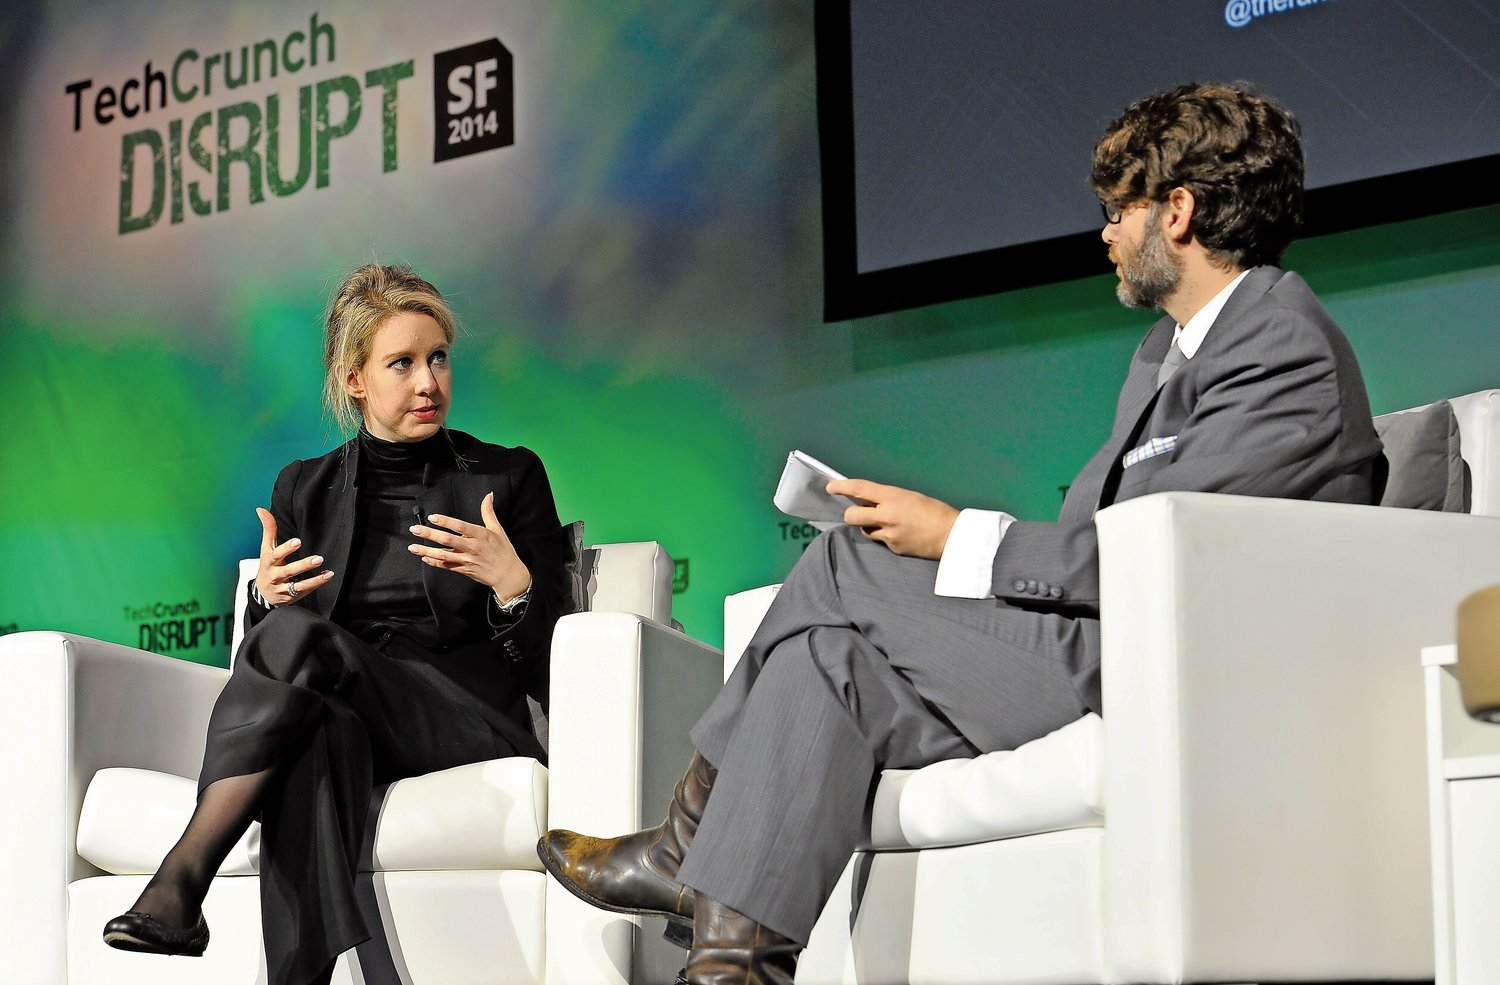 Kate Mckinnon will portray former Theranos Chairman and founder, Elizabeth Holmes, left, speaking at TechCrunch Disrupt tech conference in San Francisco, Calif. in 2014.